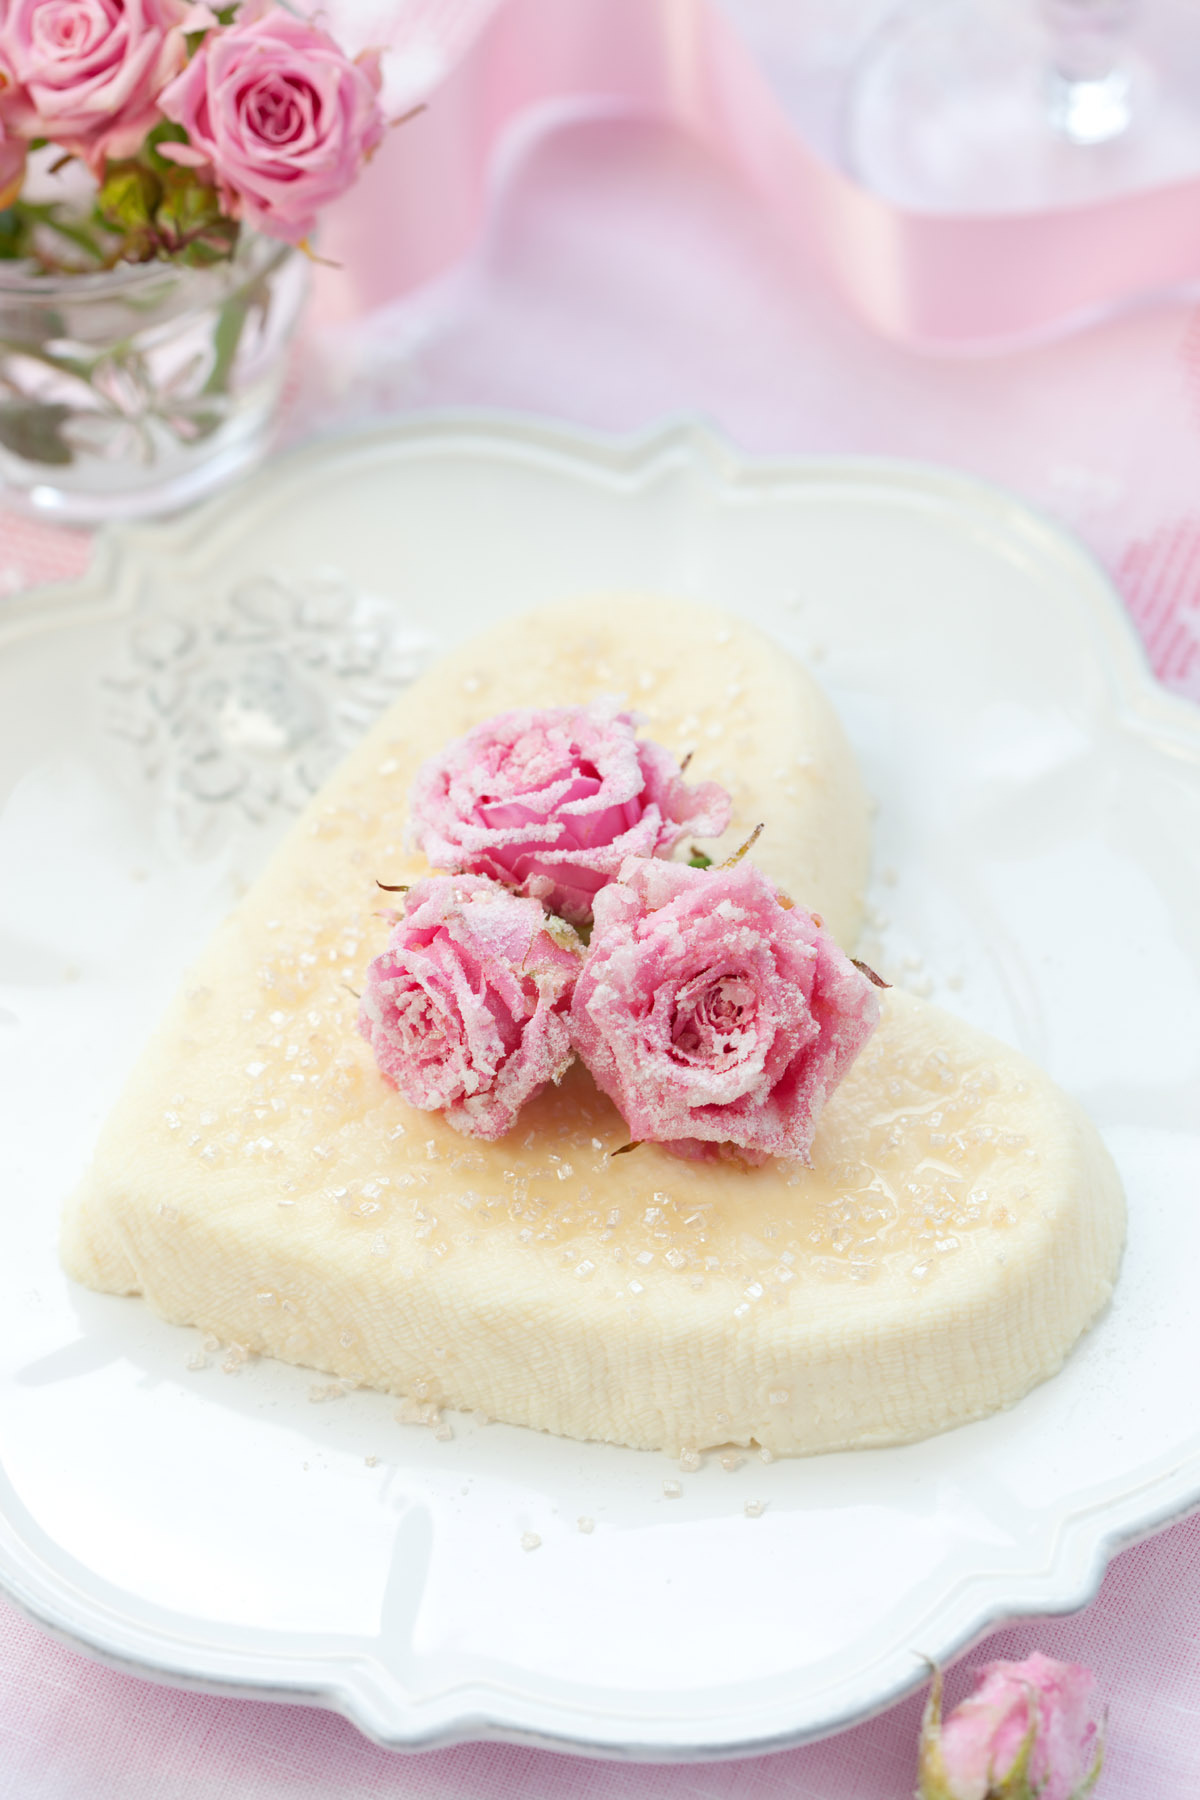 Romantic heart-shaped cake 31050